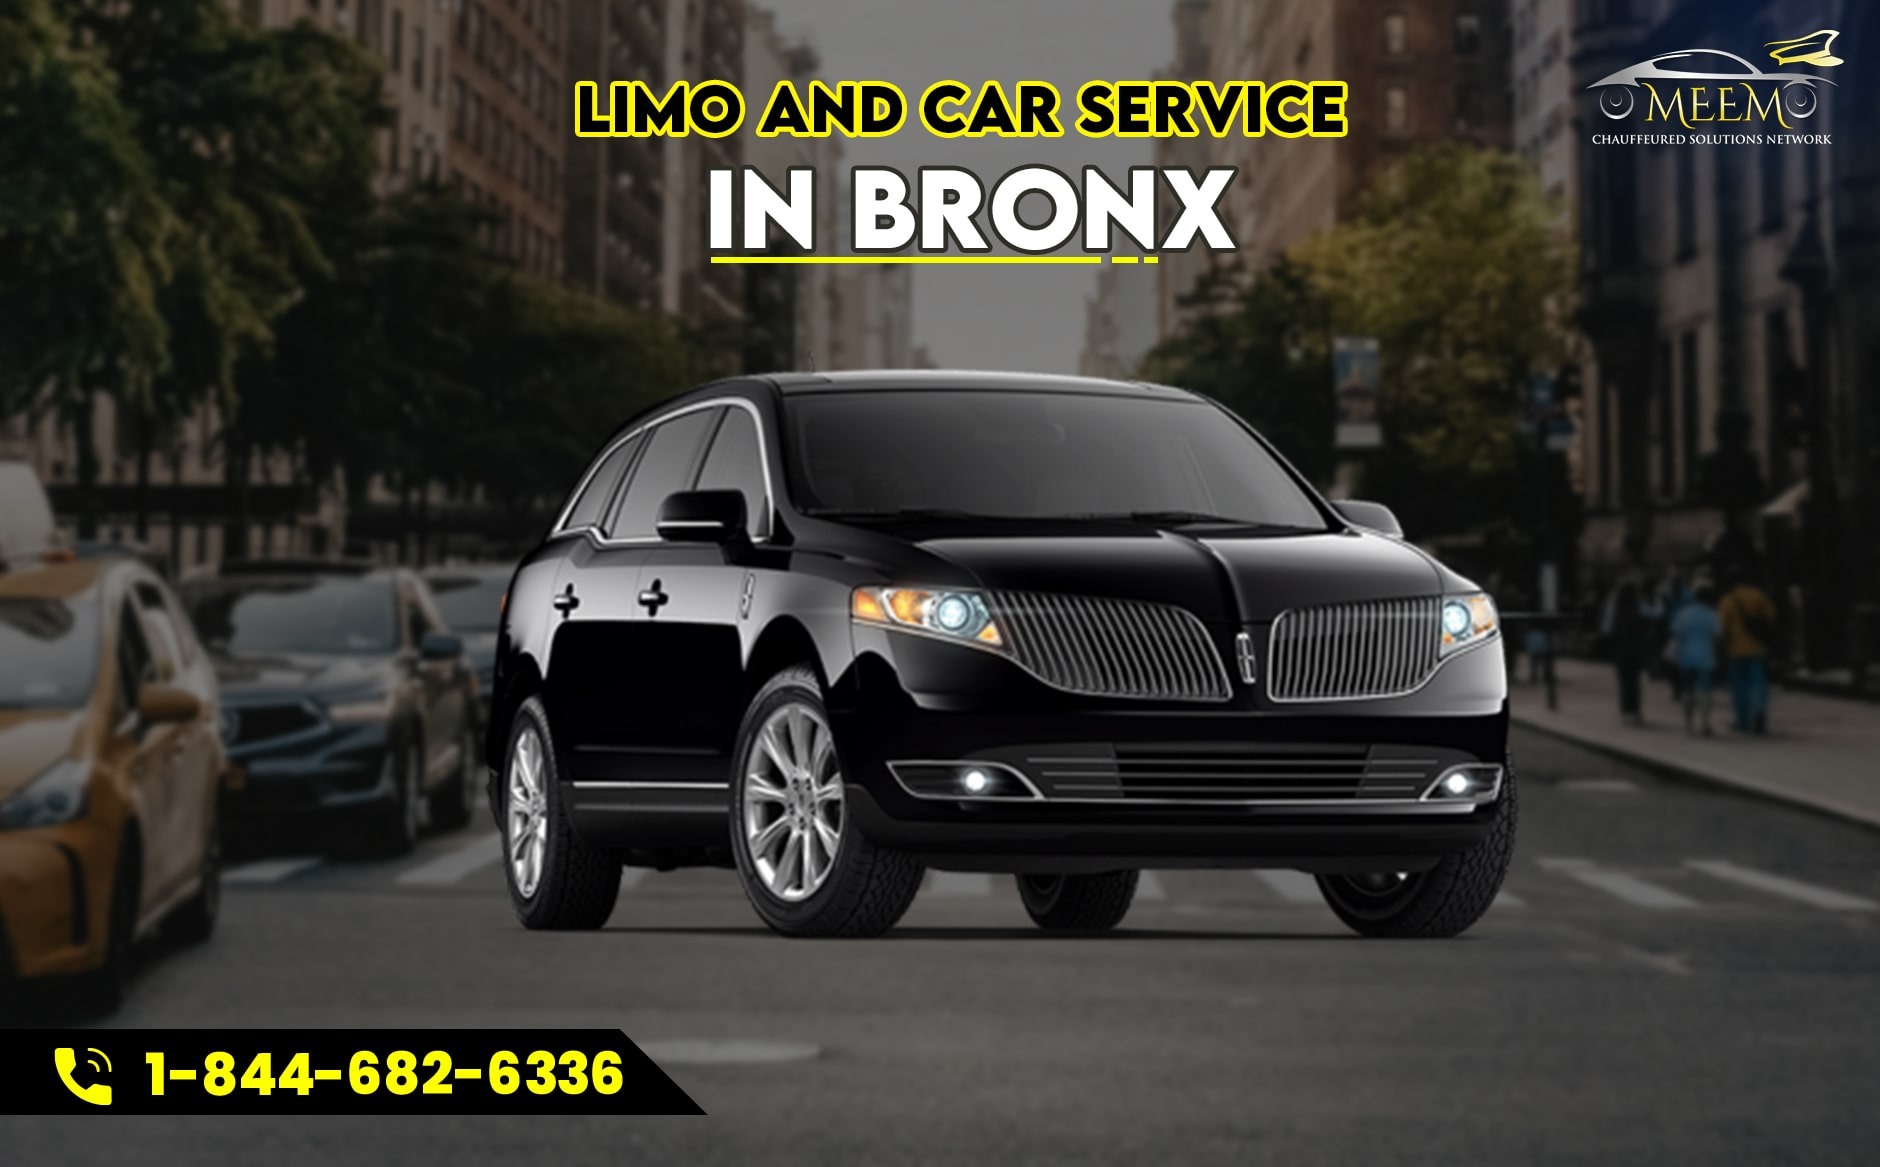 Bronx Limo and Car Services